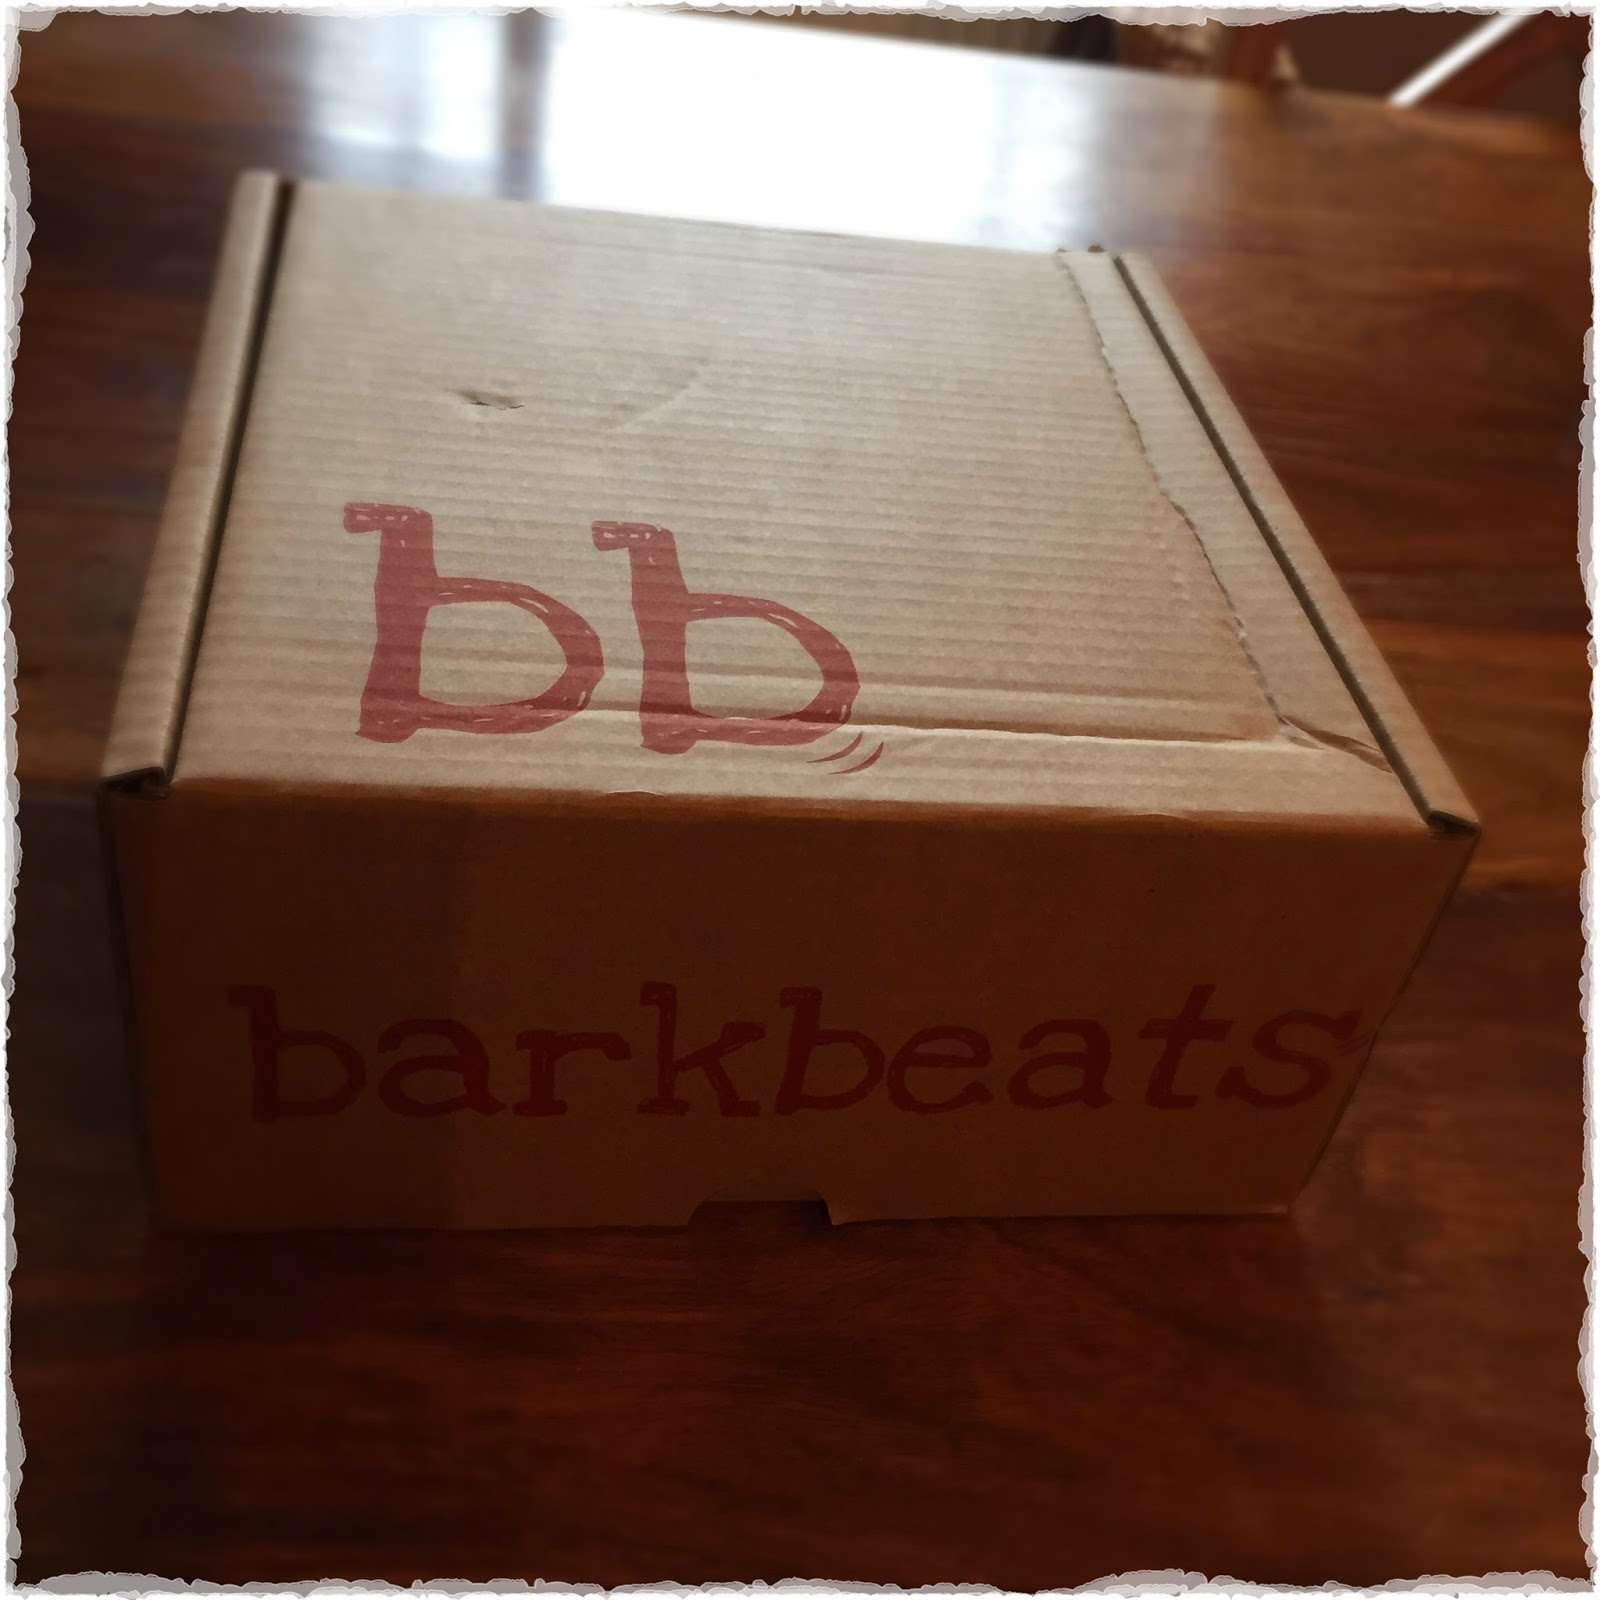 Photo of barkbeats box